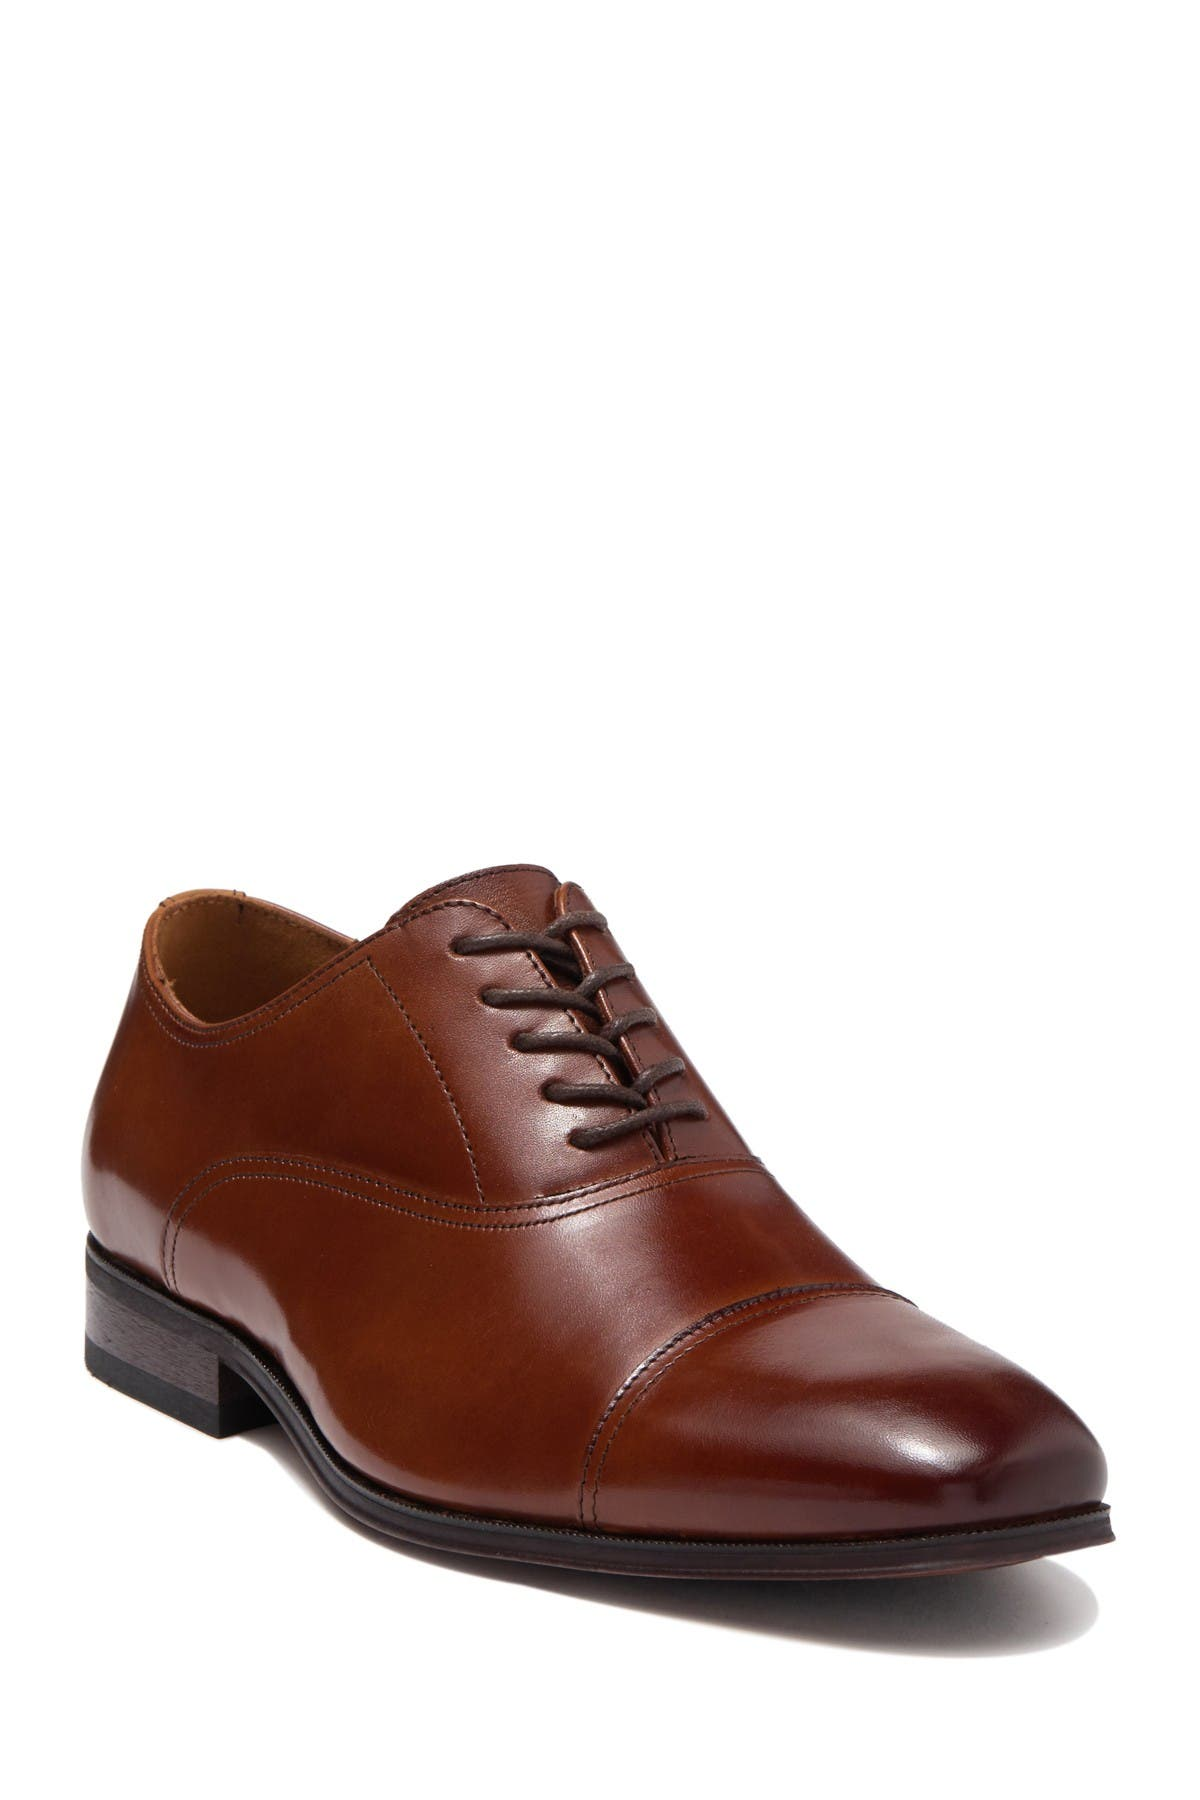 Image of Florsheim Carino Cap Toe Leather Oxford